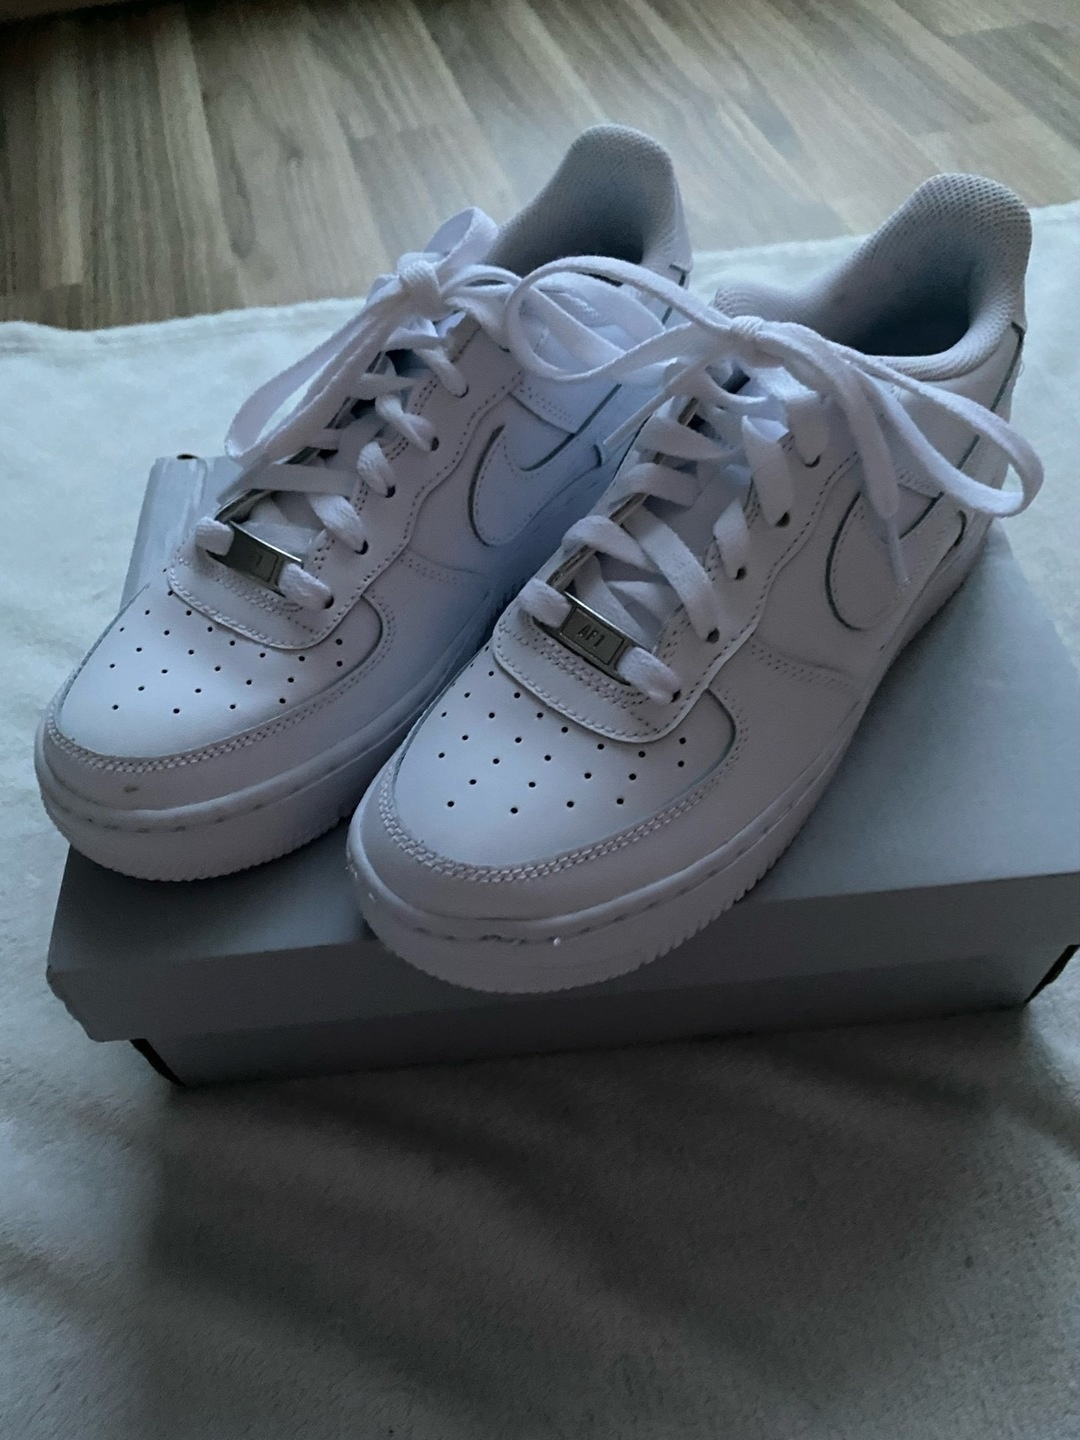 Women's sneakers - NIKE photo 1